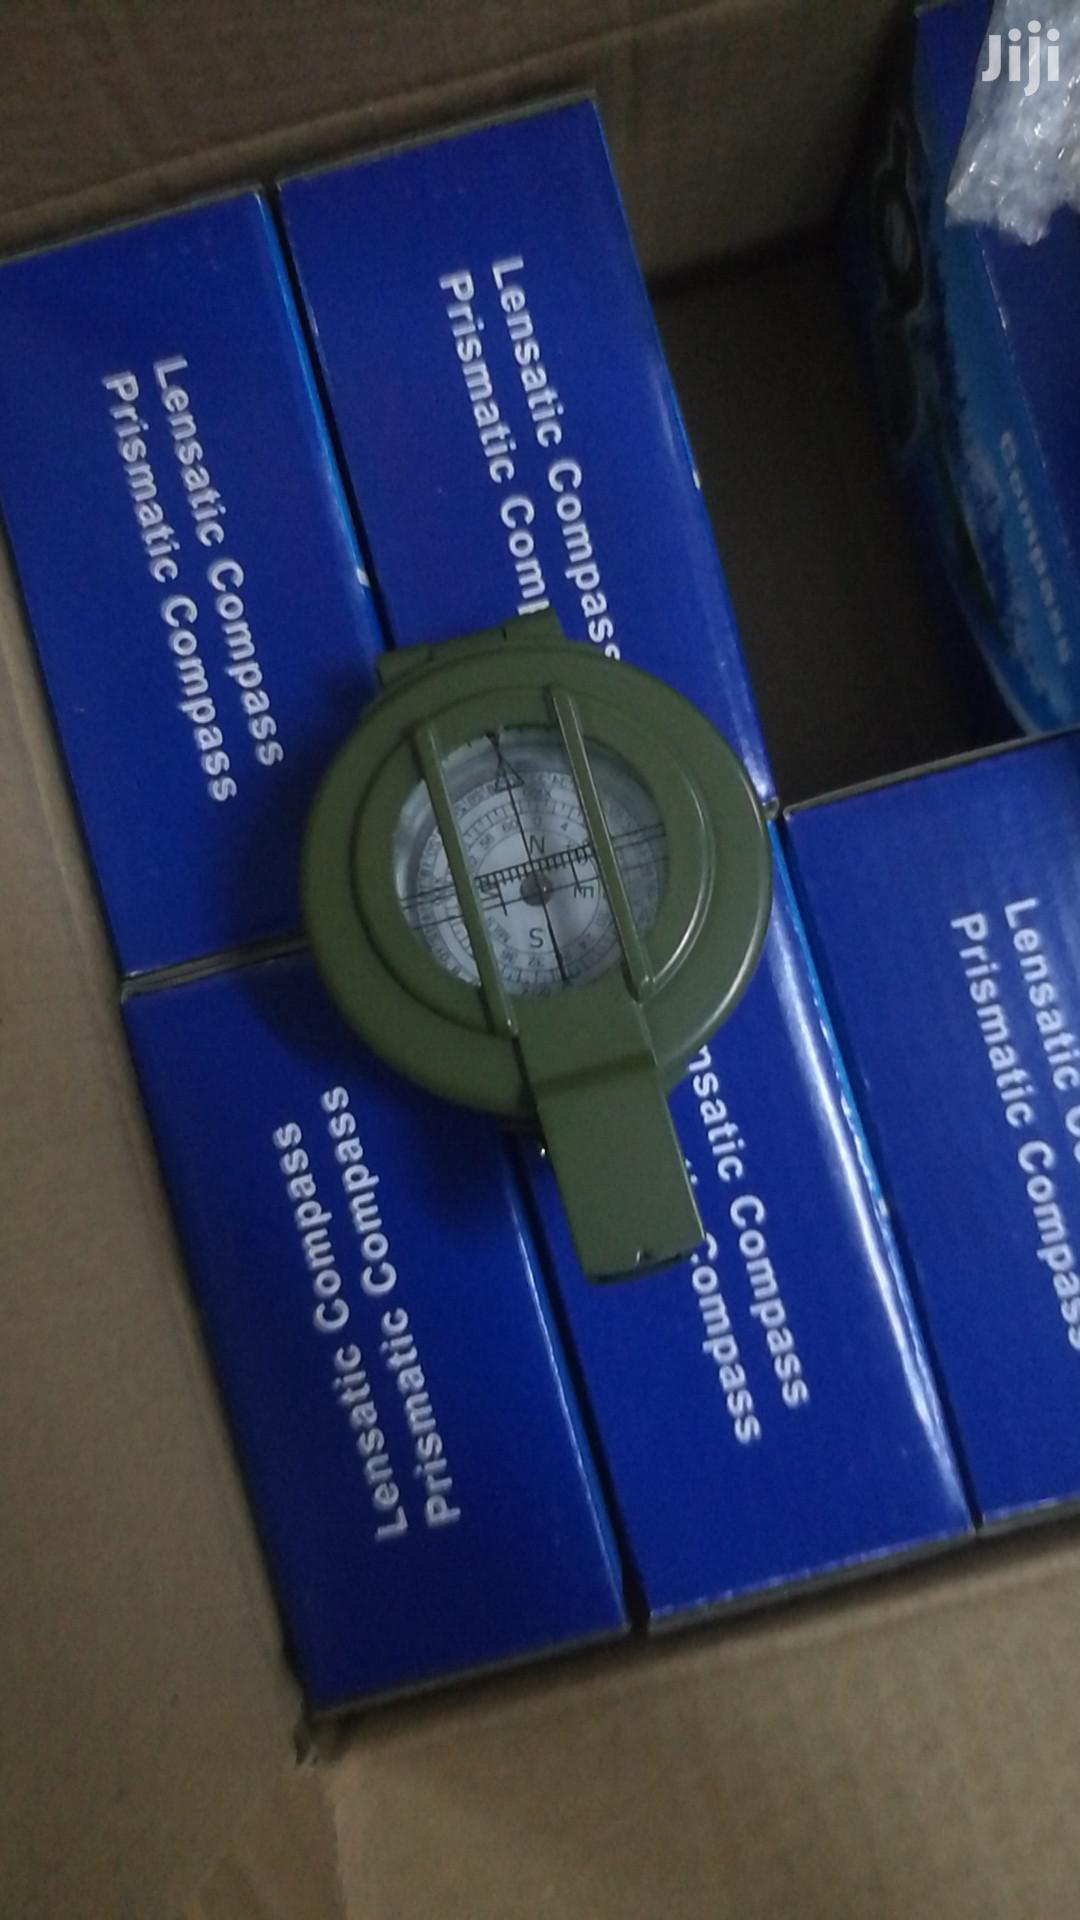 Archive: Military and Surveyor's Compass